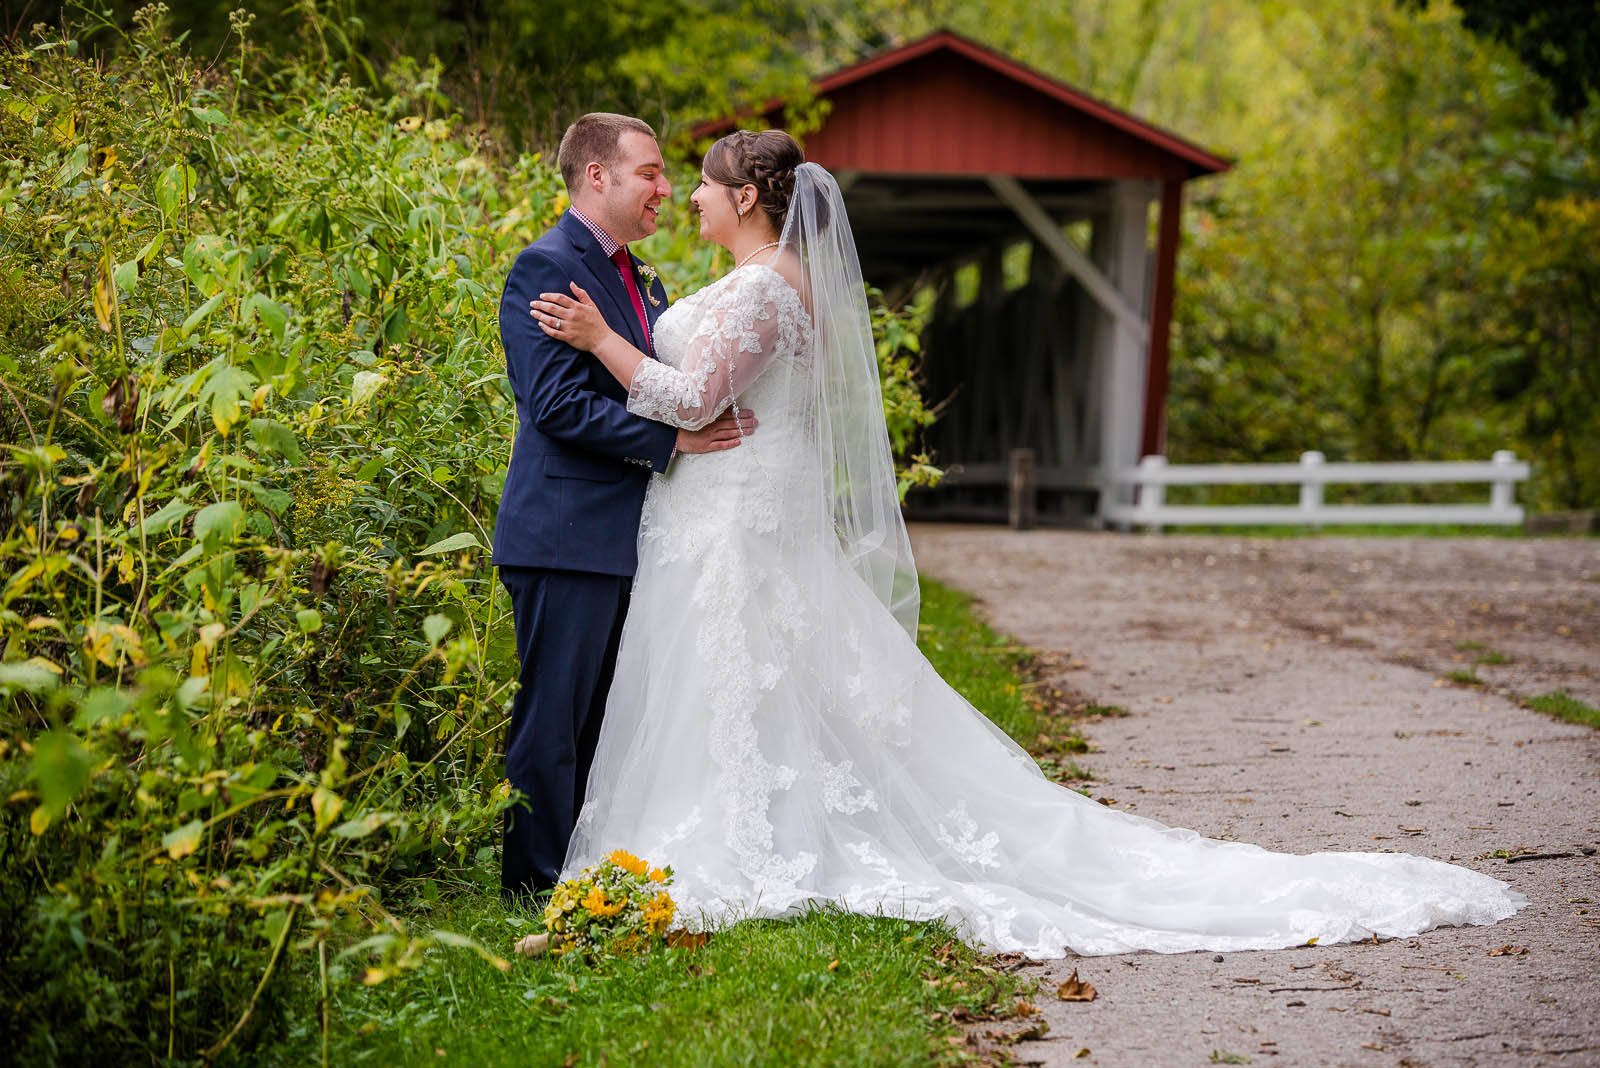 Eric_and_Christy_Photography_Blog_2018_Portraits-32